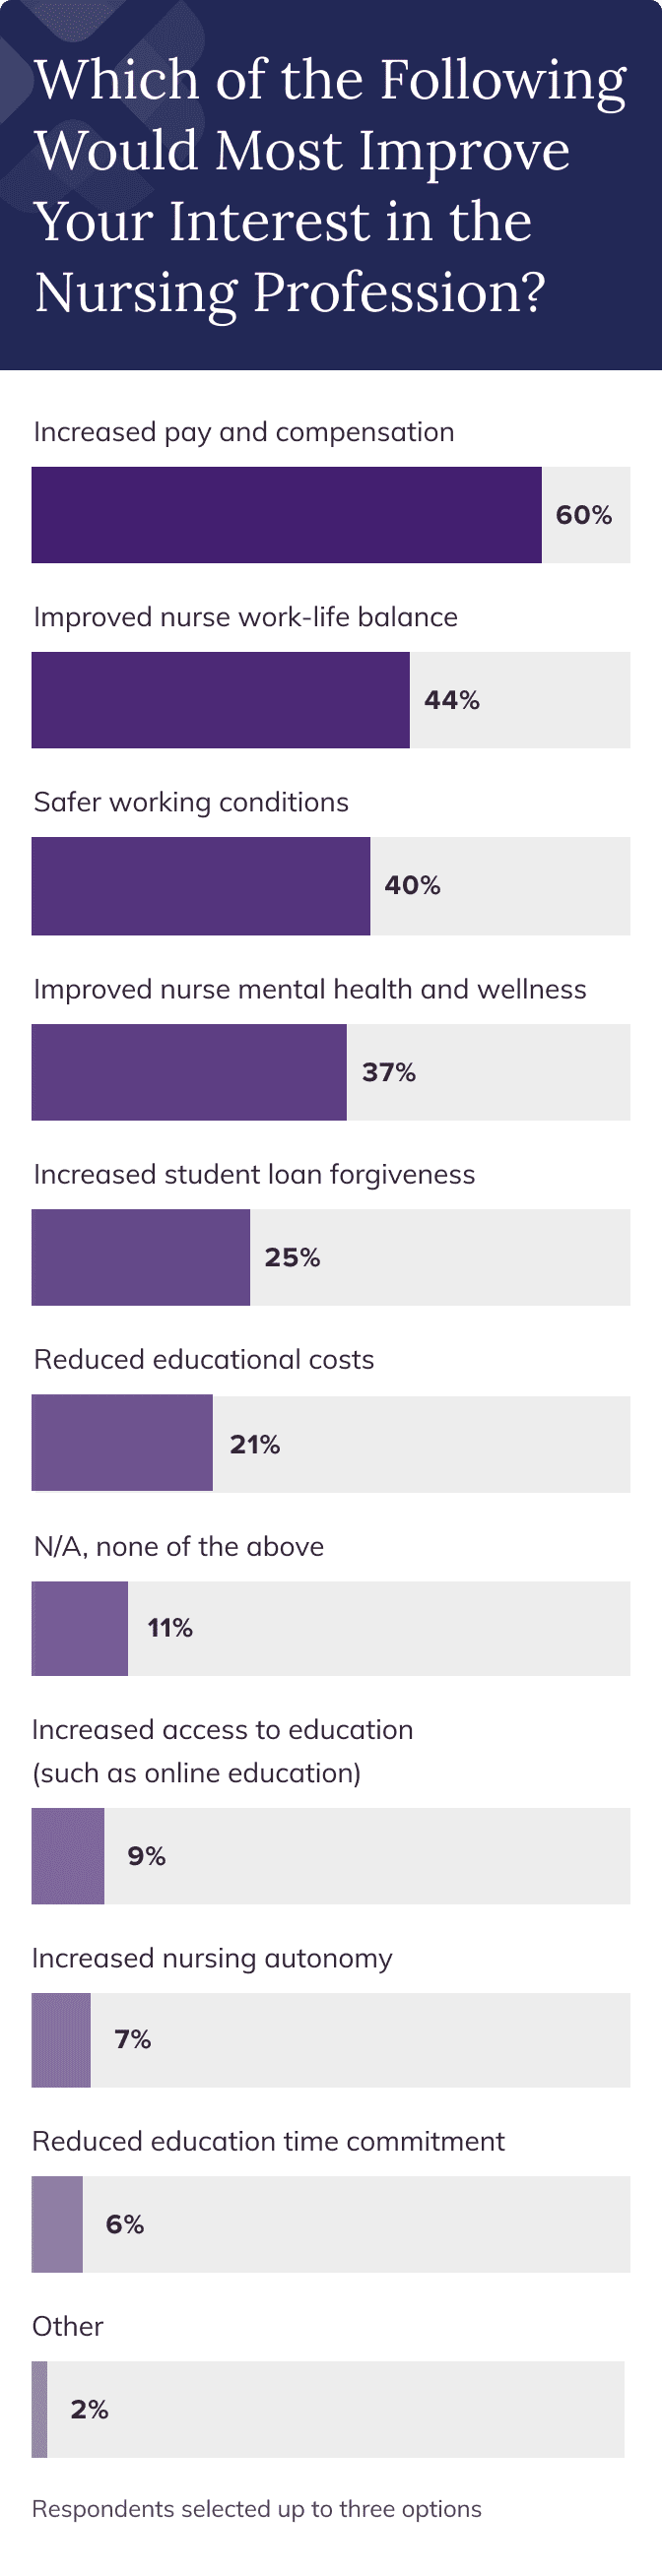 Bar chart of survey respondents' feelings about what would most improve their interest in the nursing profession. 60% of respondents indicated the need for increased pay and compensation as their top concern. Improved work-life balance, safer working conditions, and improved nurse mental health and wellness were also high on respondents' lists.